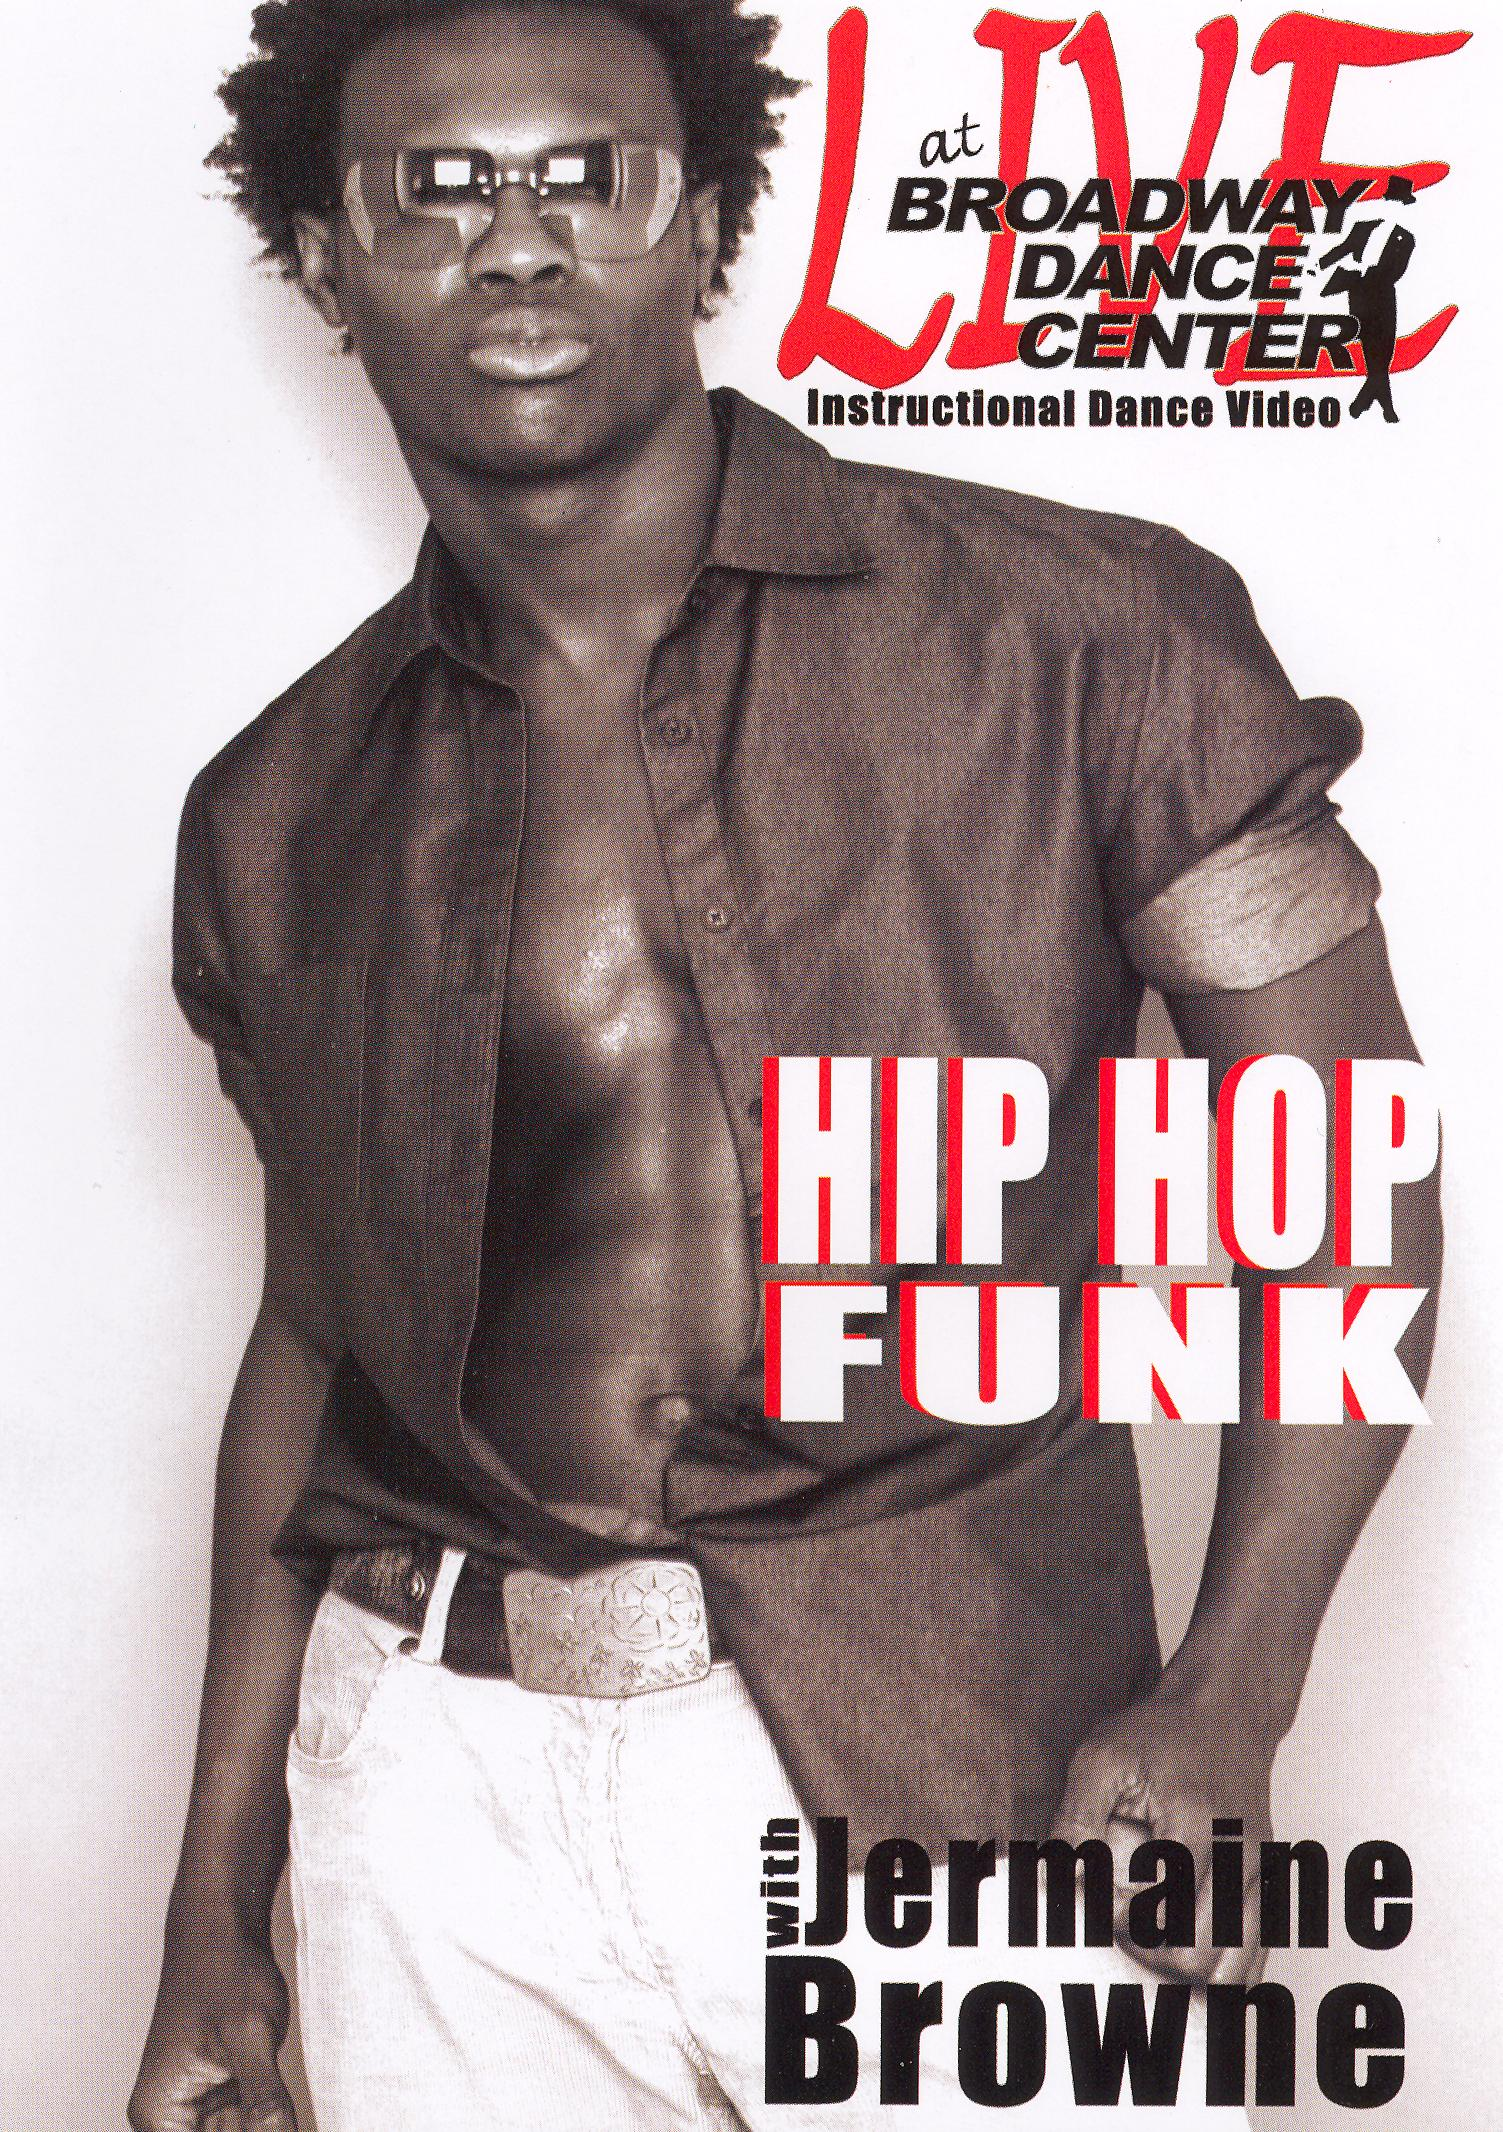 Broadway Dance Center: Hip Hop Funk